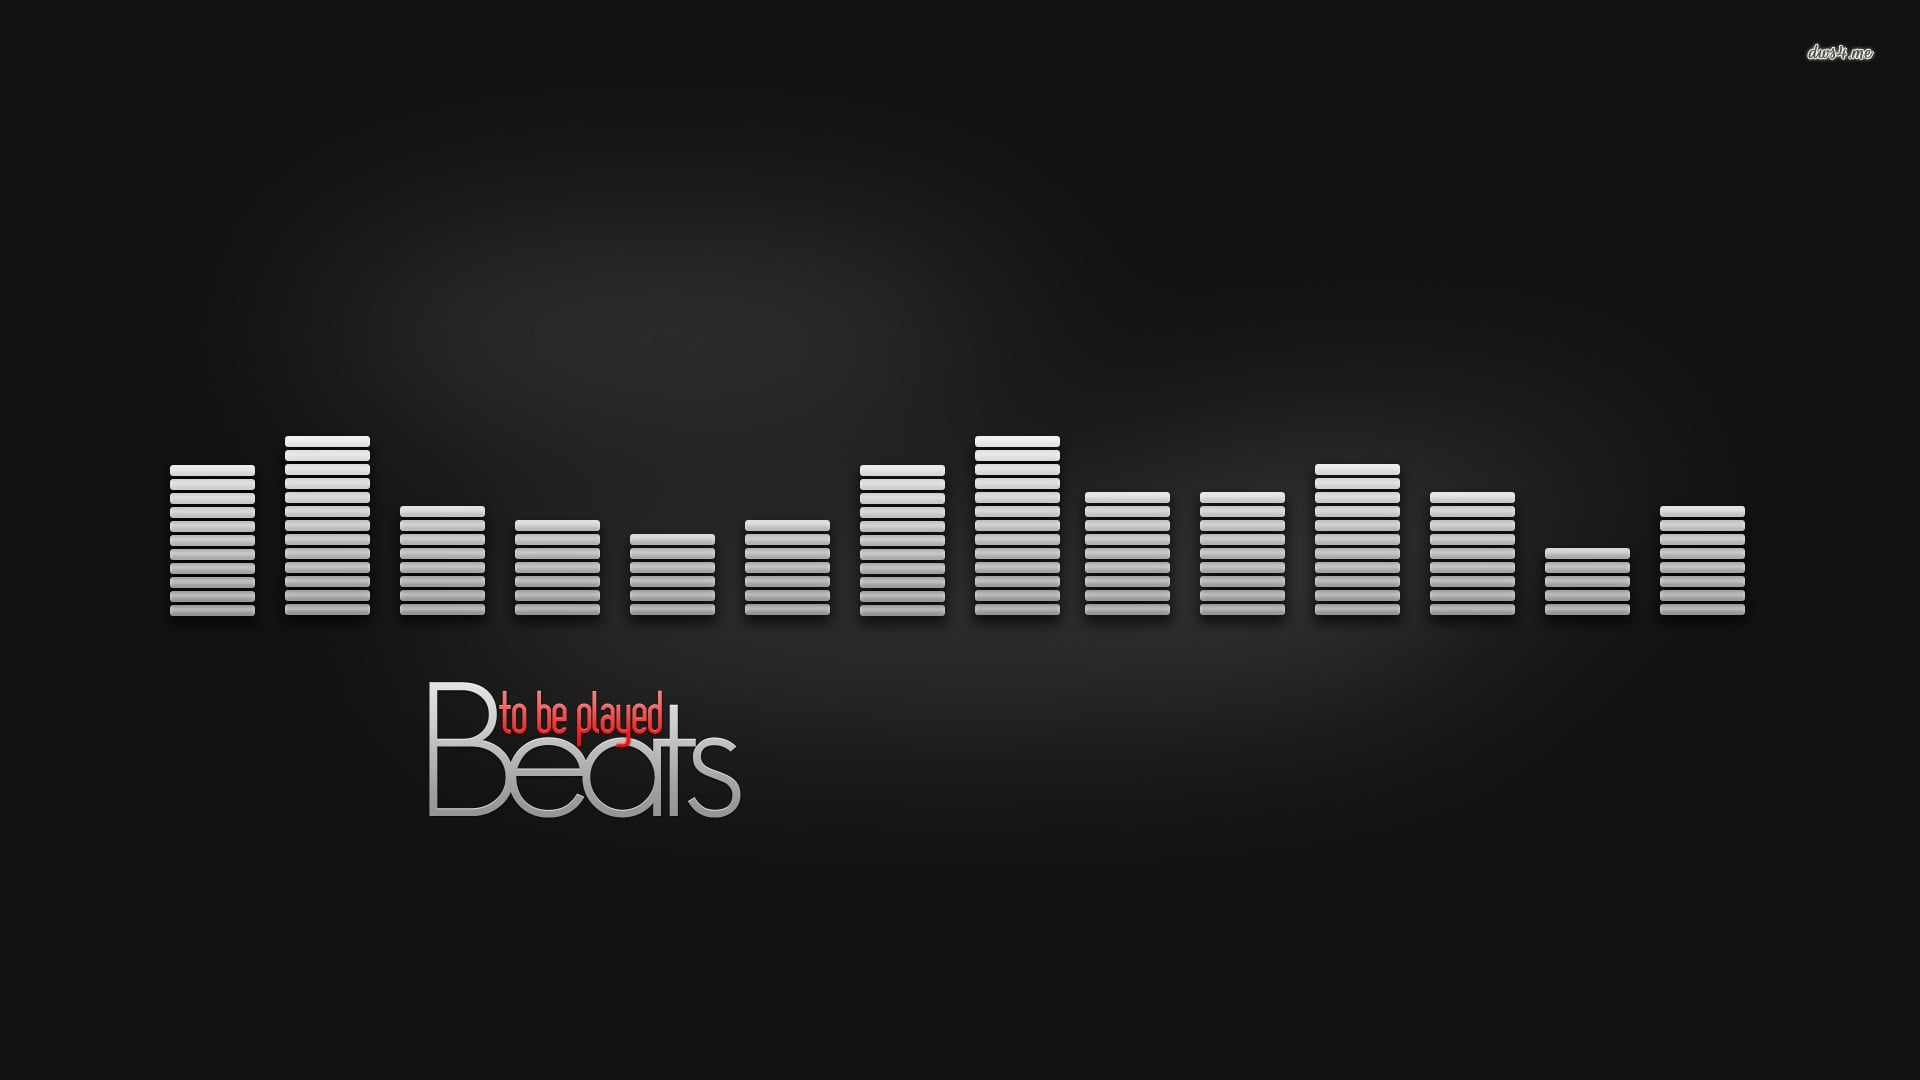 Music Beats By Dr Dre photo